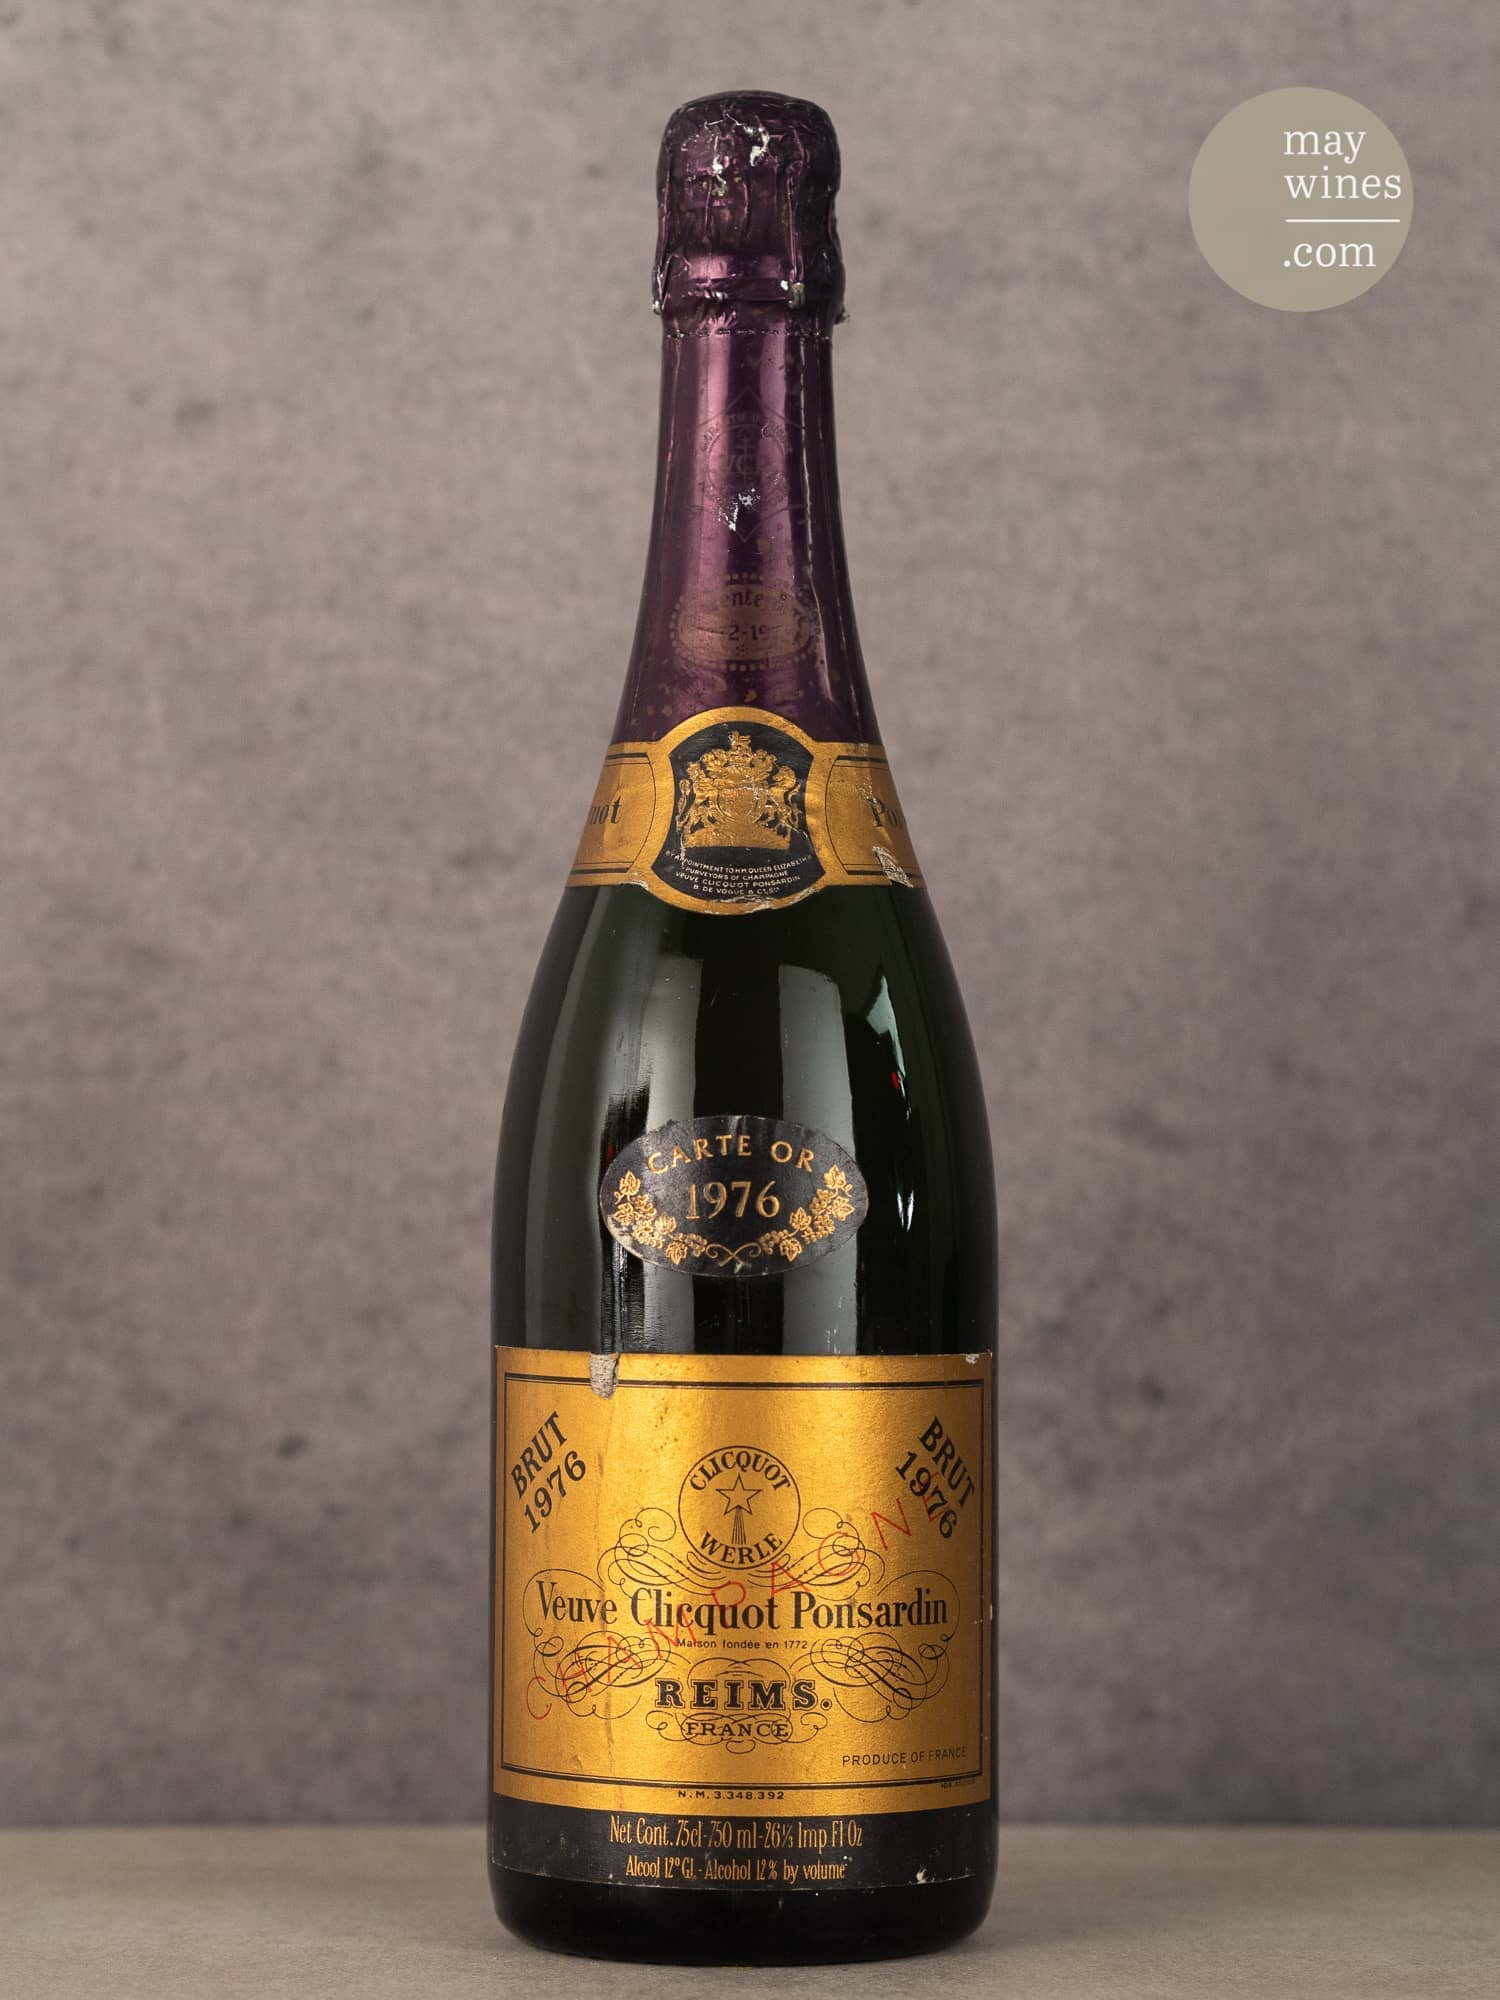 1976 Carte Or - Vueve Clicquot